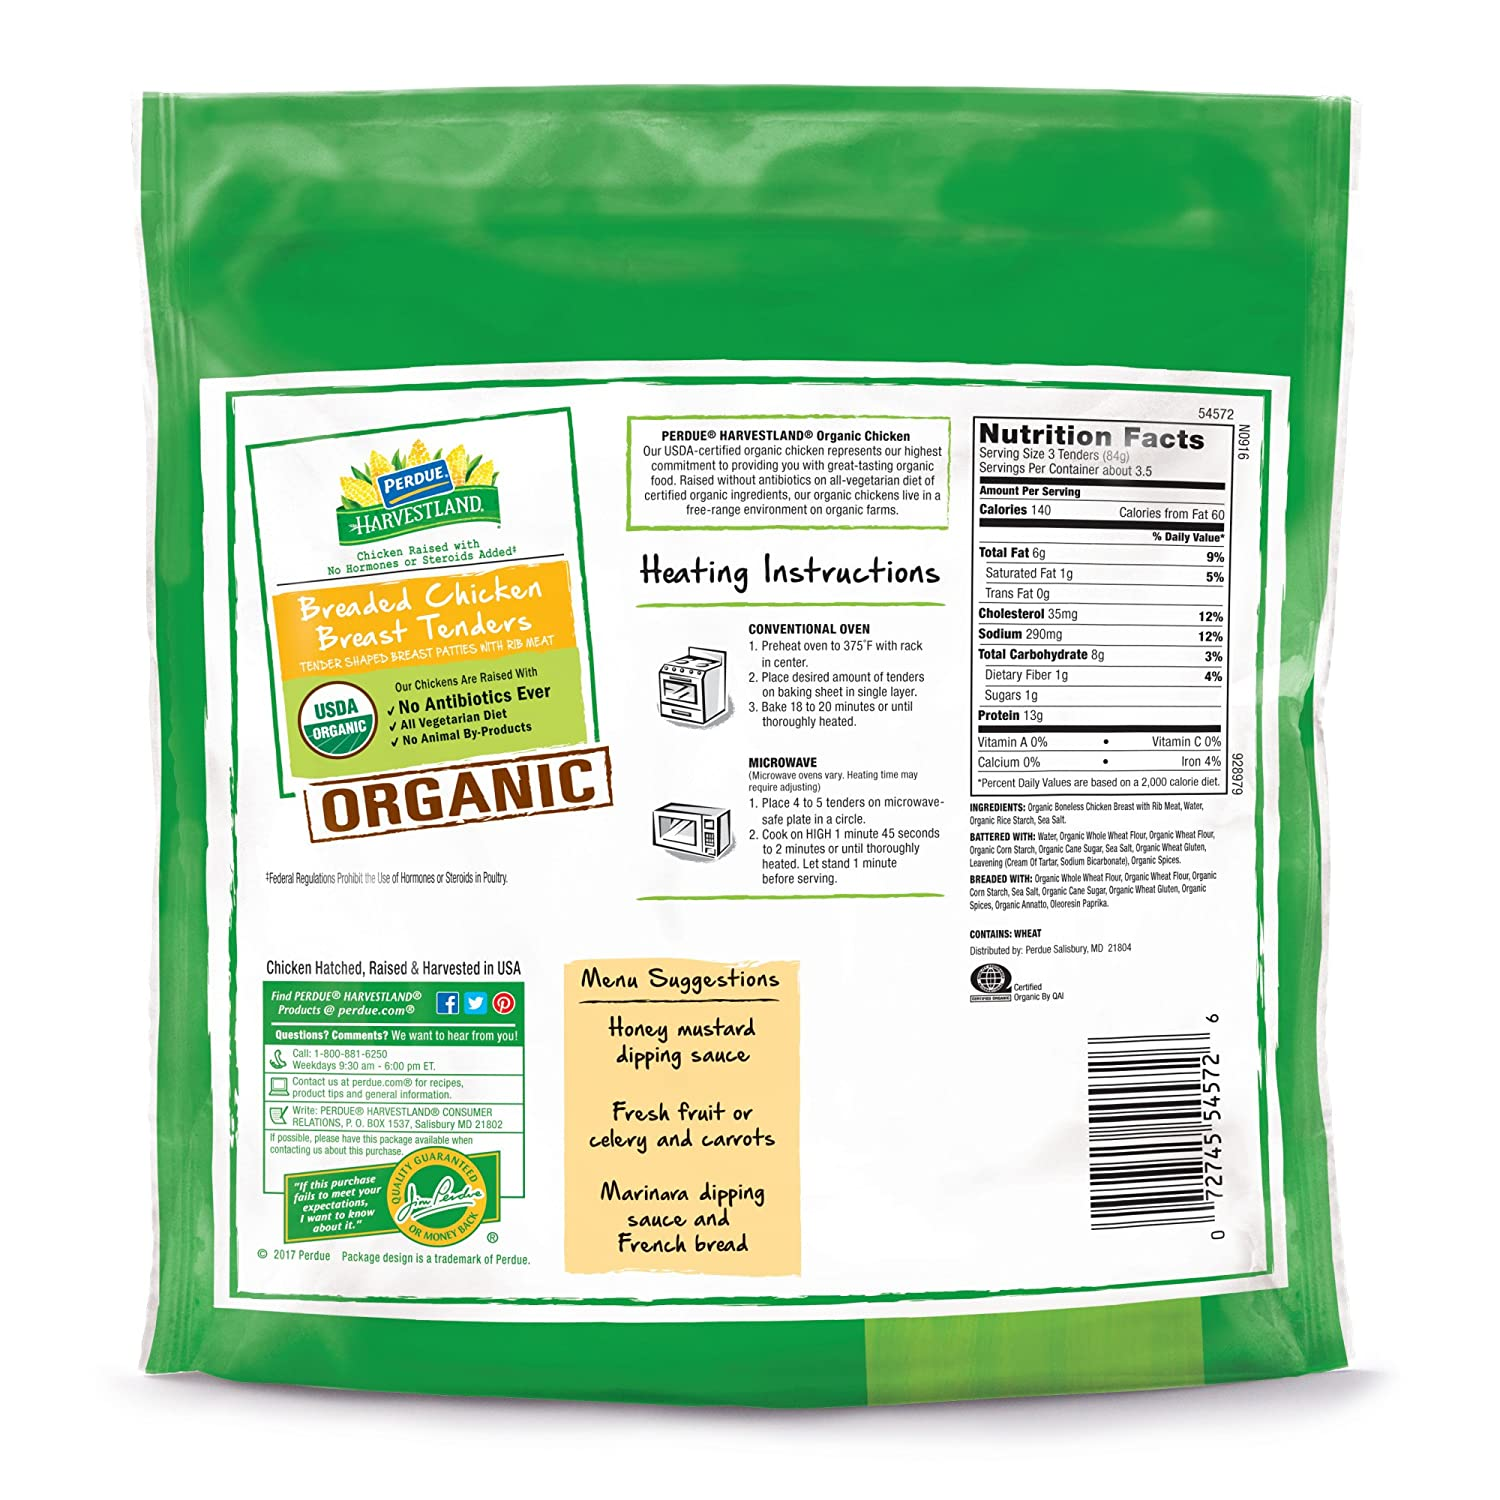 Perdue Harvestland, Organic Chicken Breast Tenders, 0.625 lb (Frozen ...